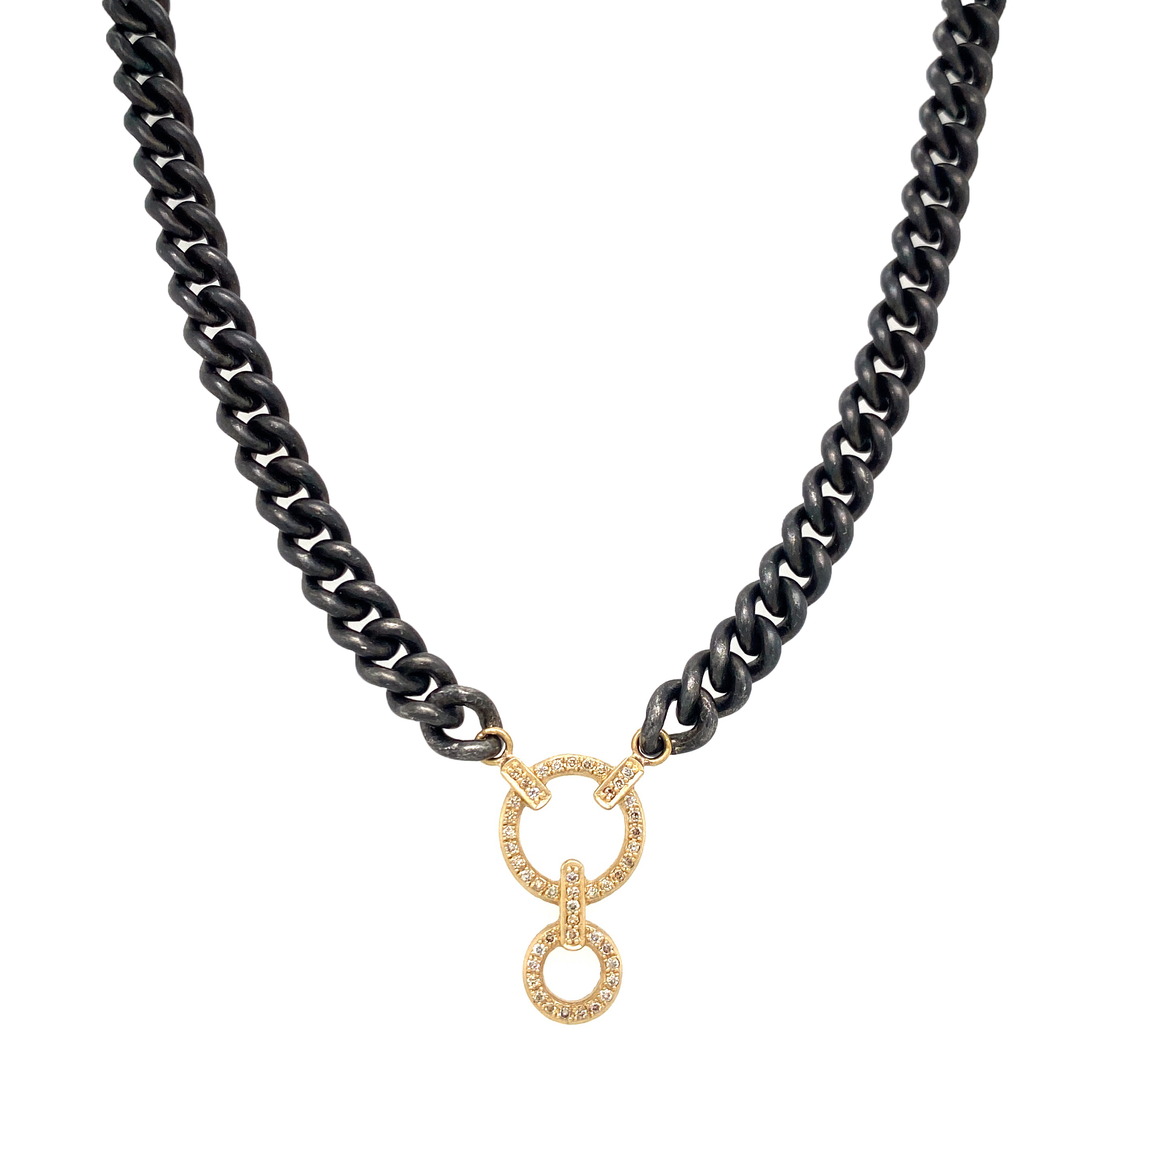 Classic Double Circle Curb Link Necklace - Lesley Ann Jewels